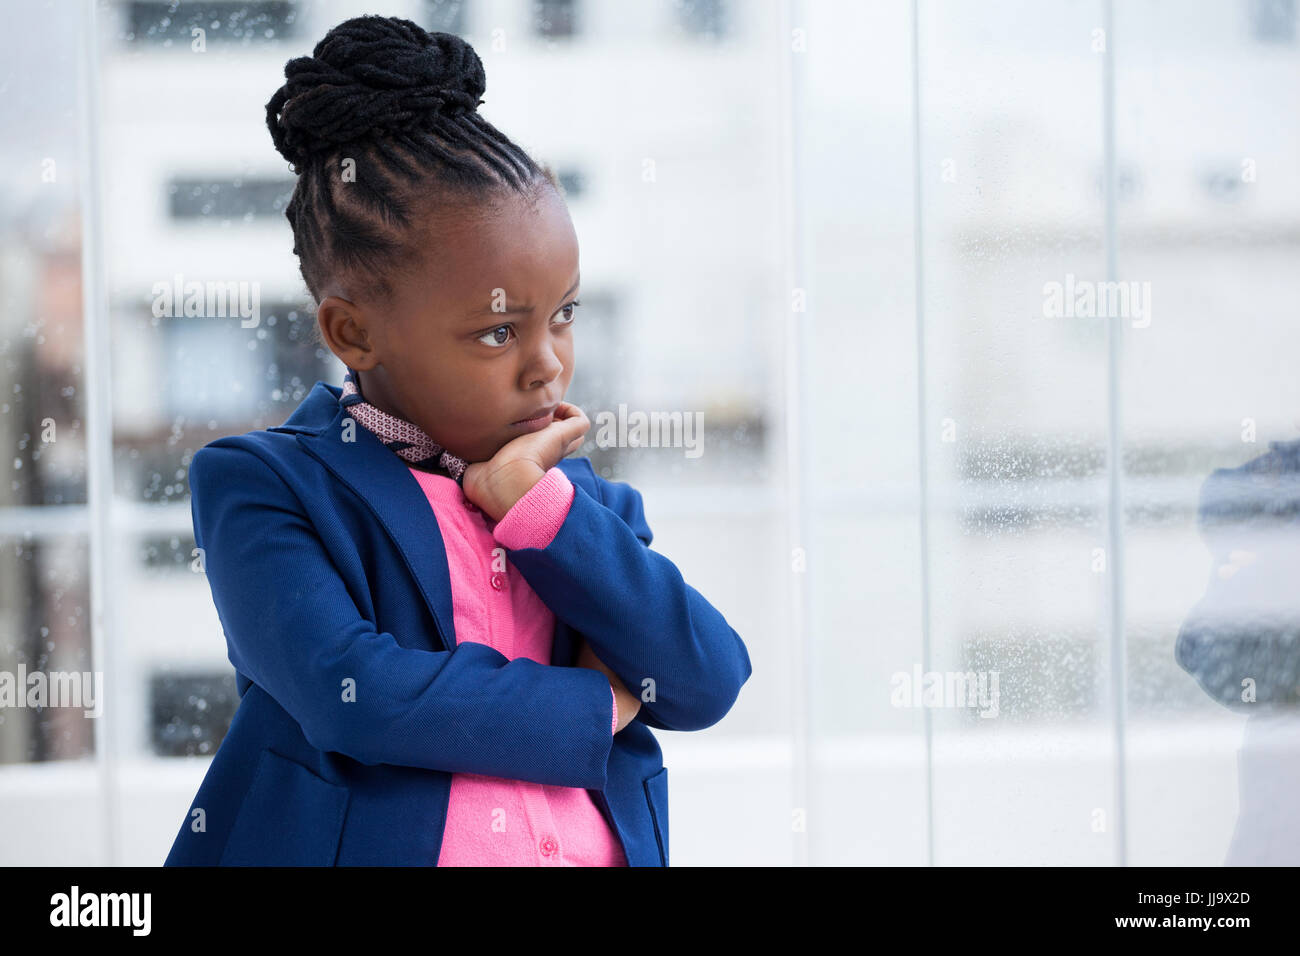 Thoughtful businesswoman with hand on chin standing by glass window at office - Stock Image